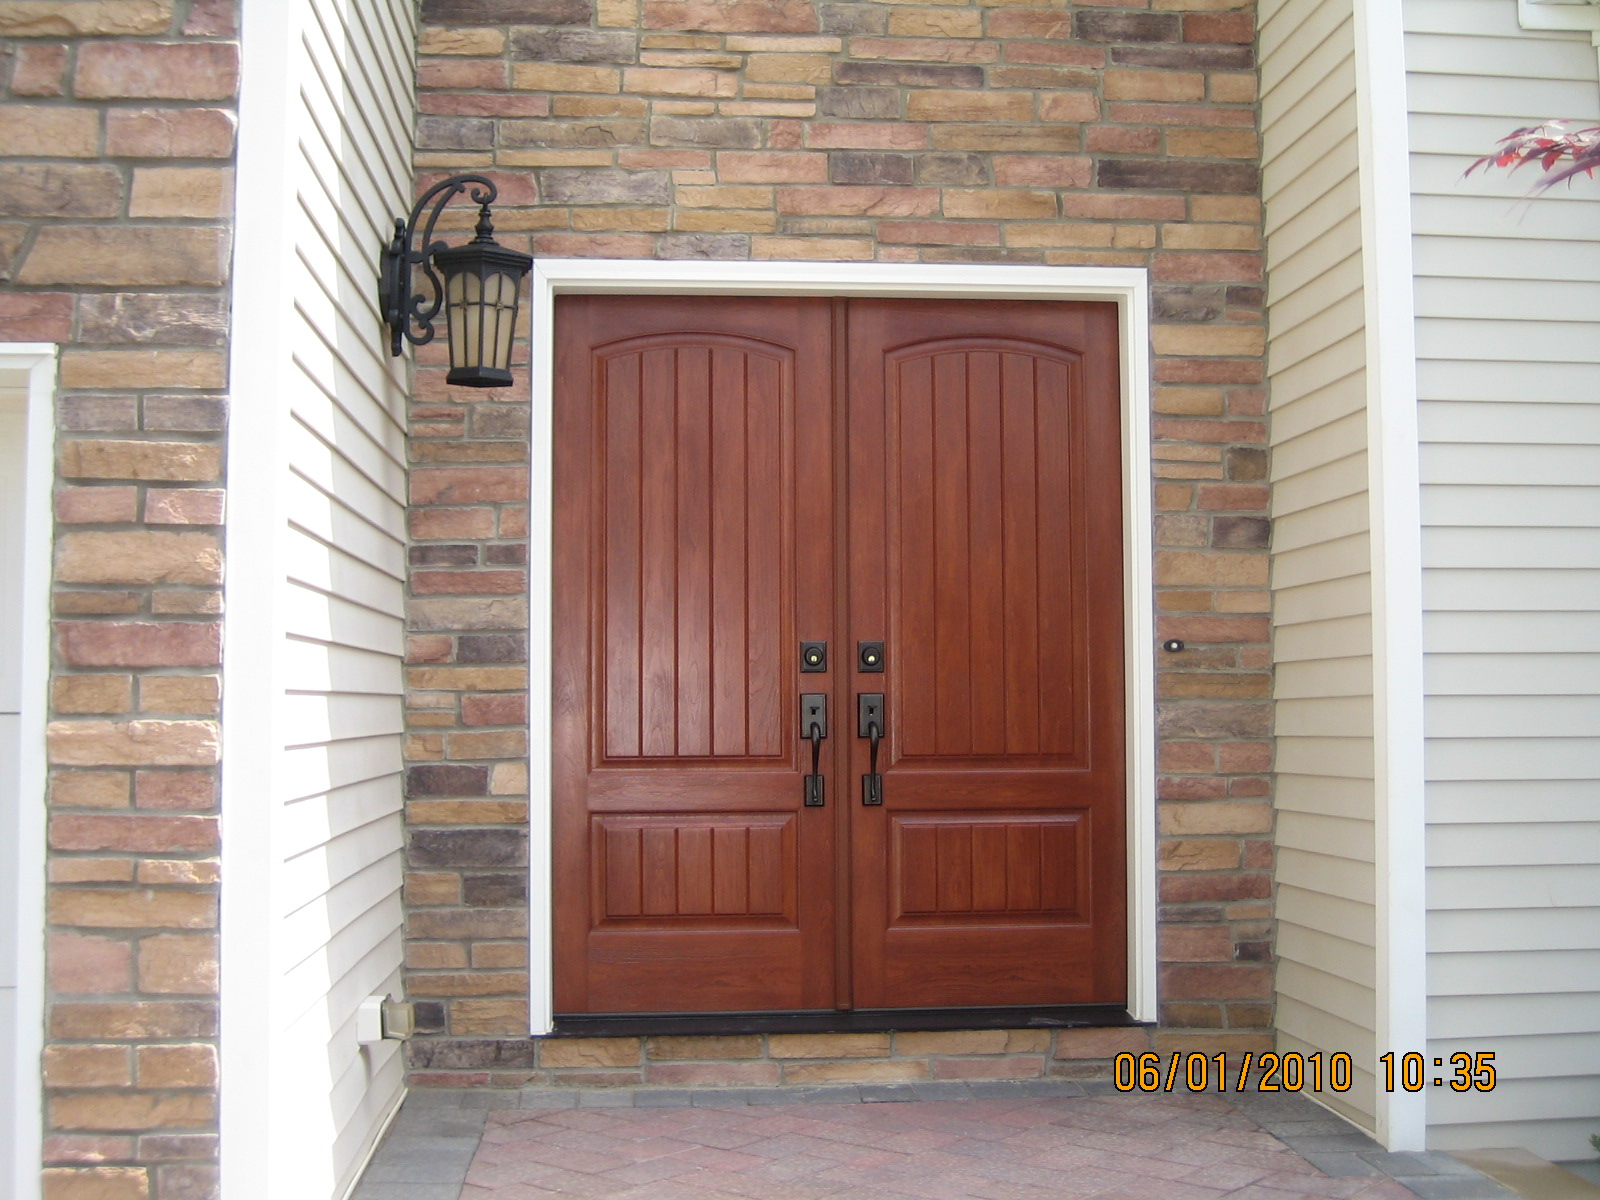 Window and door outlet coupons near me in edison 8coupons for Windows and doors near me